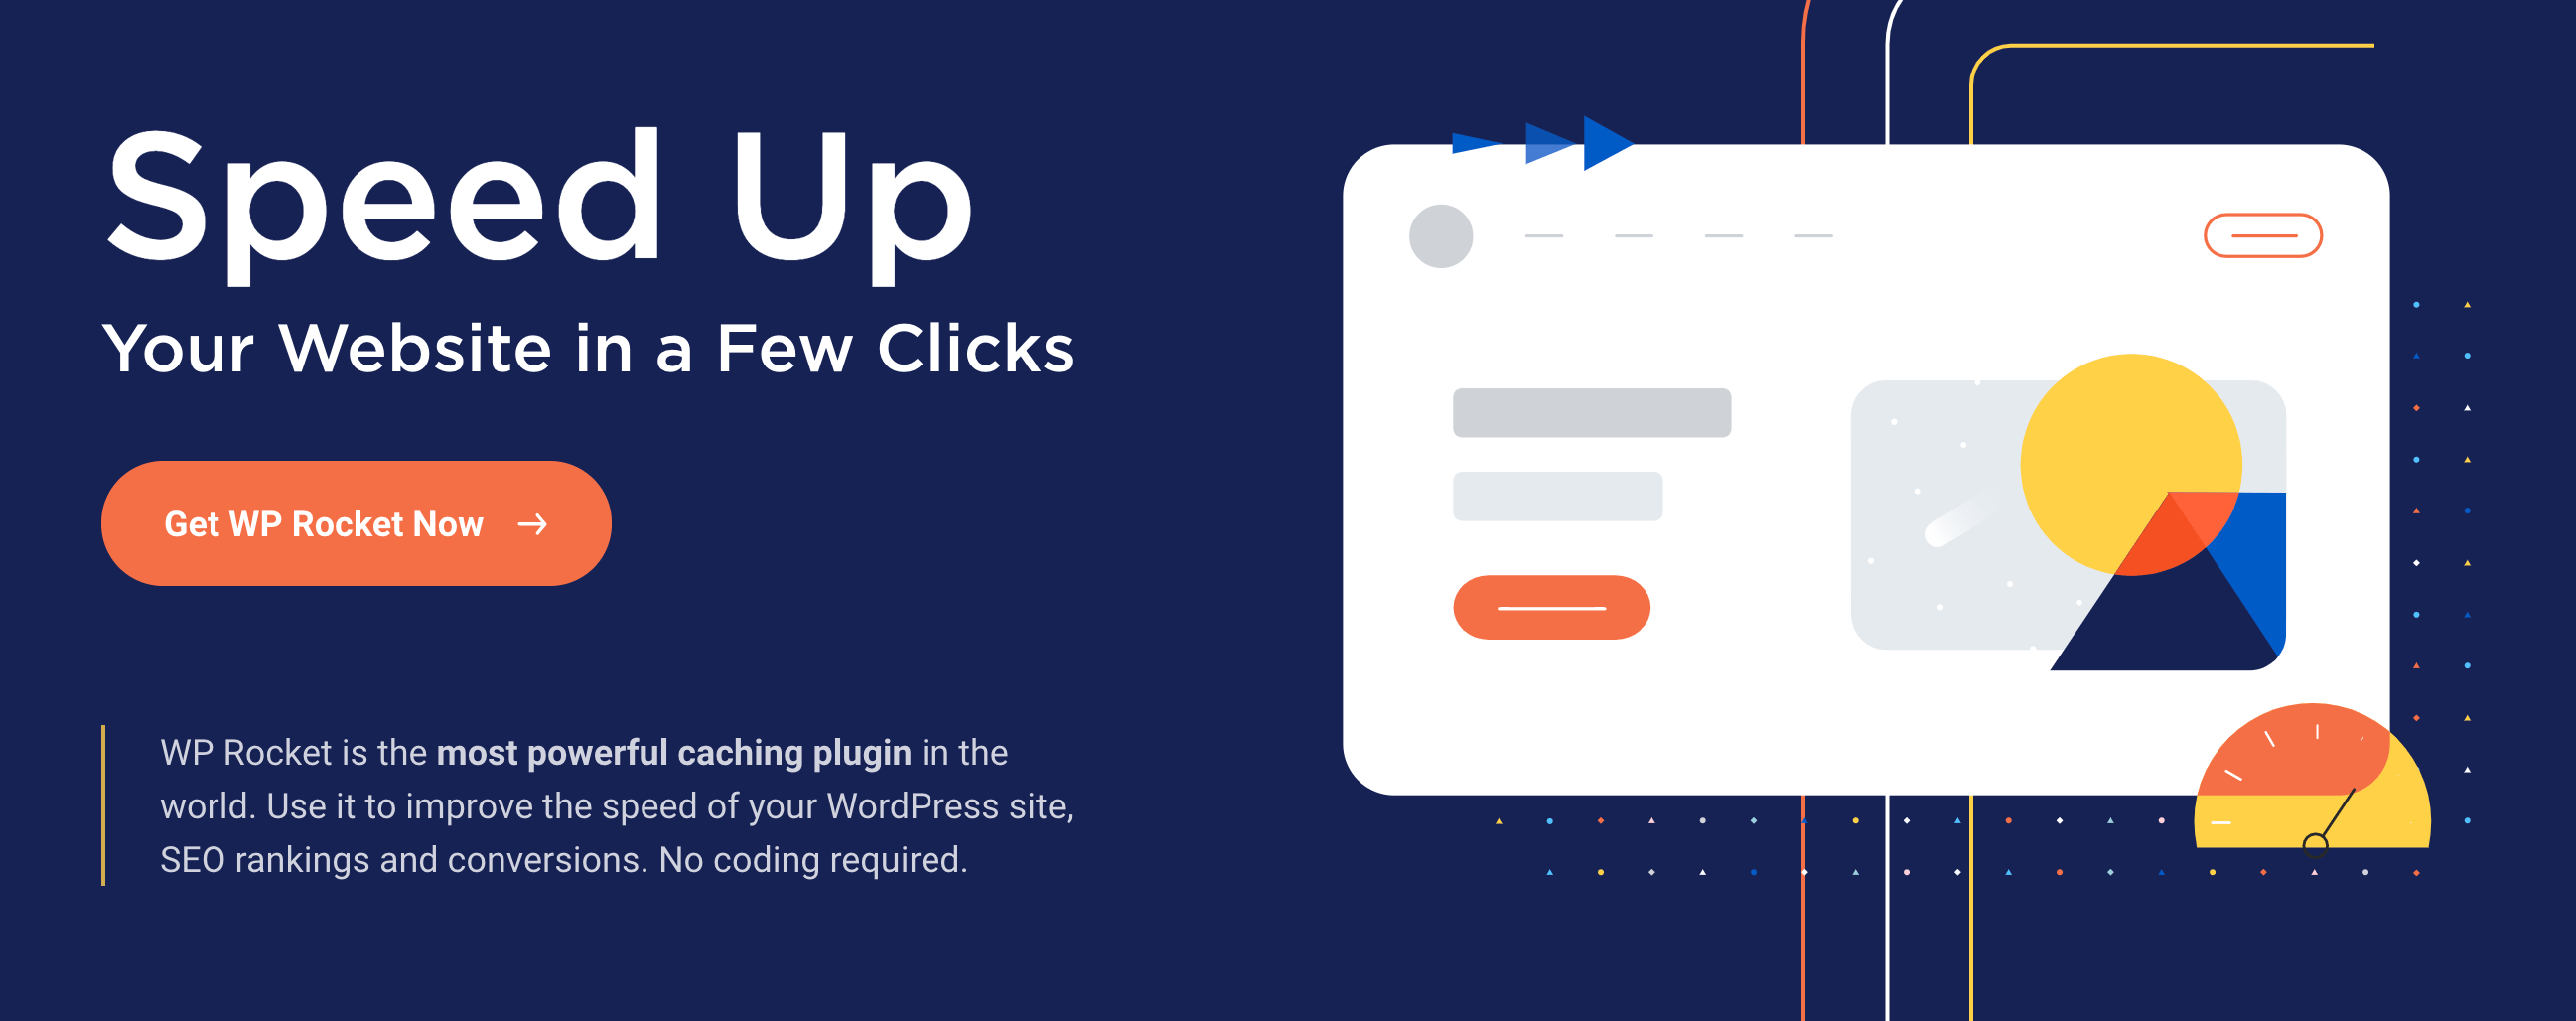 Speed up your website in a few clicks